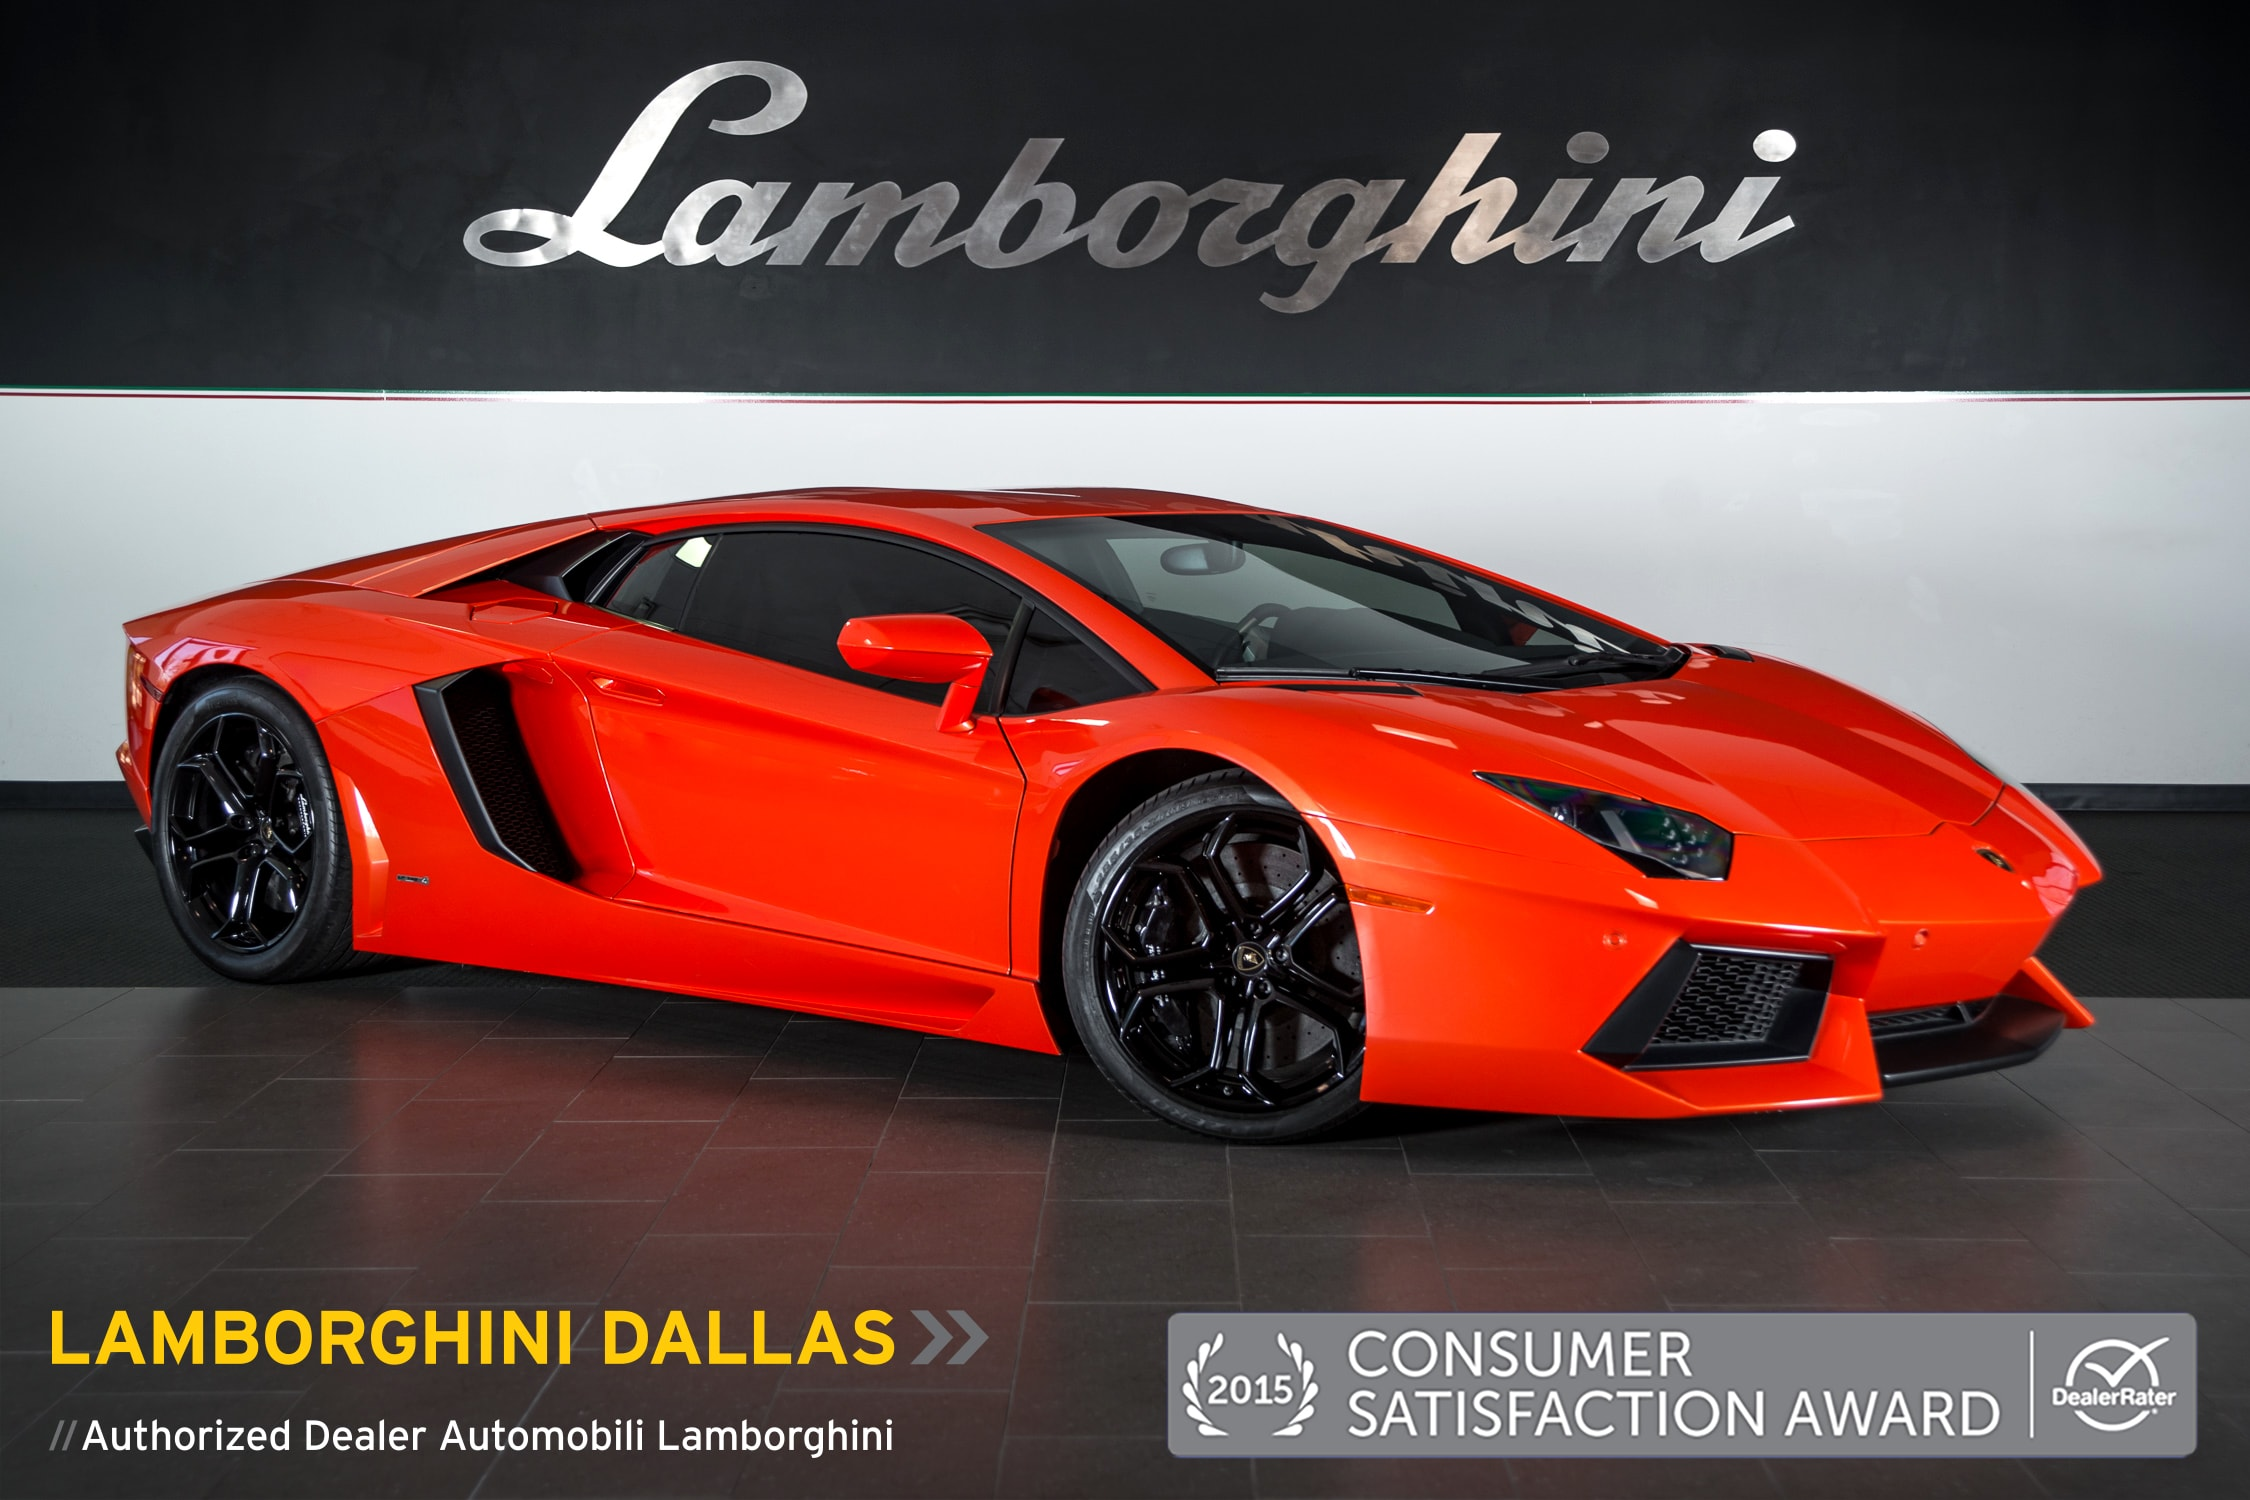 Lamborghini Dallas Lamborghini Service Center